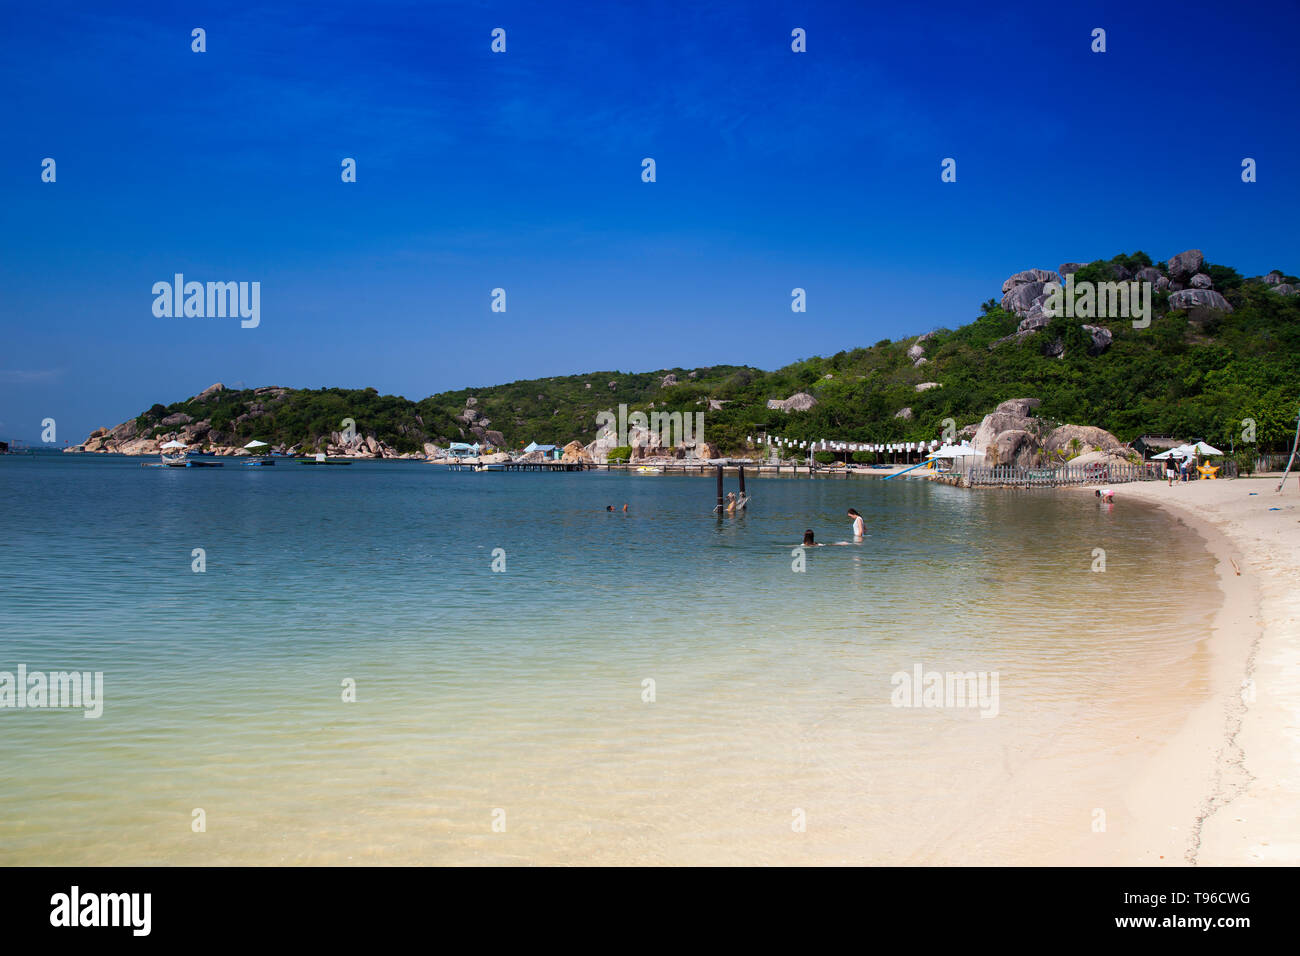 Beach and resort of Sao Bien in the Bay of Cam Ranh,south china sea, Ninh Thuan, Vietnam, Asia - Stock Image